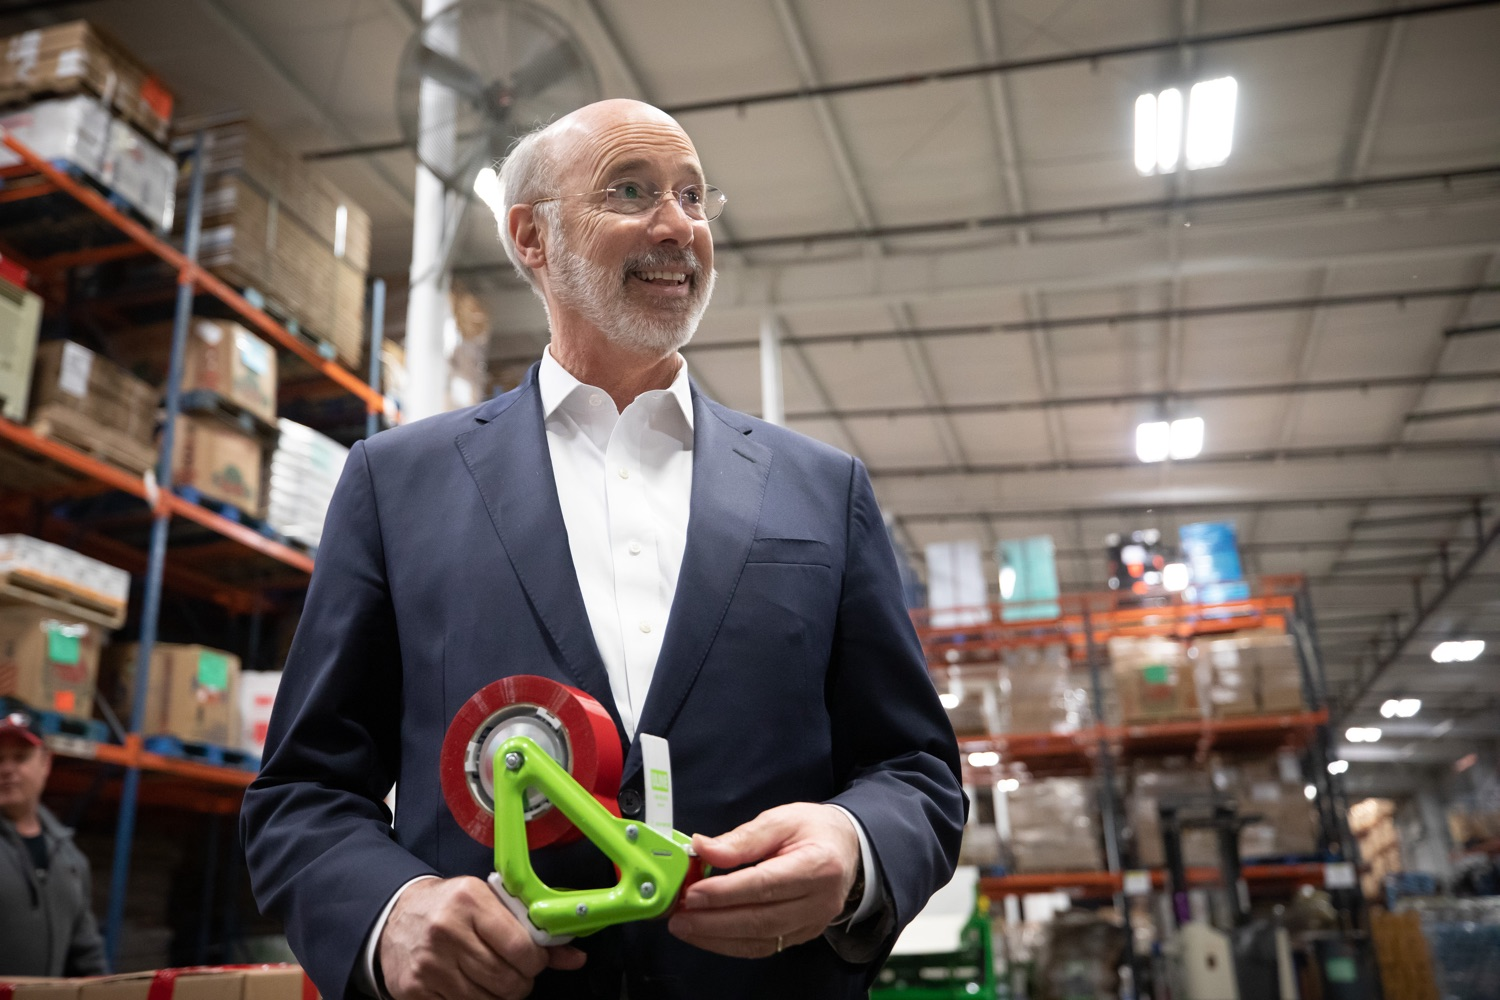 "<a href=""https://filesource.wostreaming.net/commonwealthofpa/photo/17632_gov_foodbank_volunteering_dz_009.jpg"" target=""_blank"">⇣ Download Photo<br></a>Governor Tom Wolf loading boxes of food at the Central Pennsylvania Food Bank.  The governor and first lady visit the Central Pennsylvania Food Bank in Harrisburg to participate in a volunteer project, packing boxes of food for veterans and their families. Ahead of Thanksgiving and the holiday season, Governor Tom Wolf and First Lady Frances Wolf are reminding Pennsylvanians of the importance of helping each other. Harrisburg, PA  Tuesday November 26, 2019"